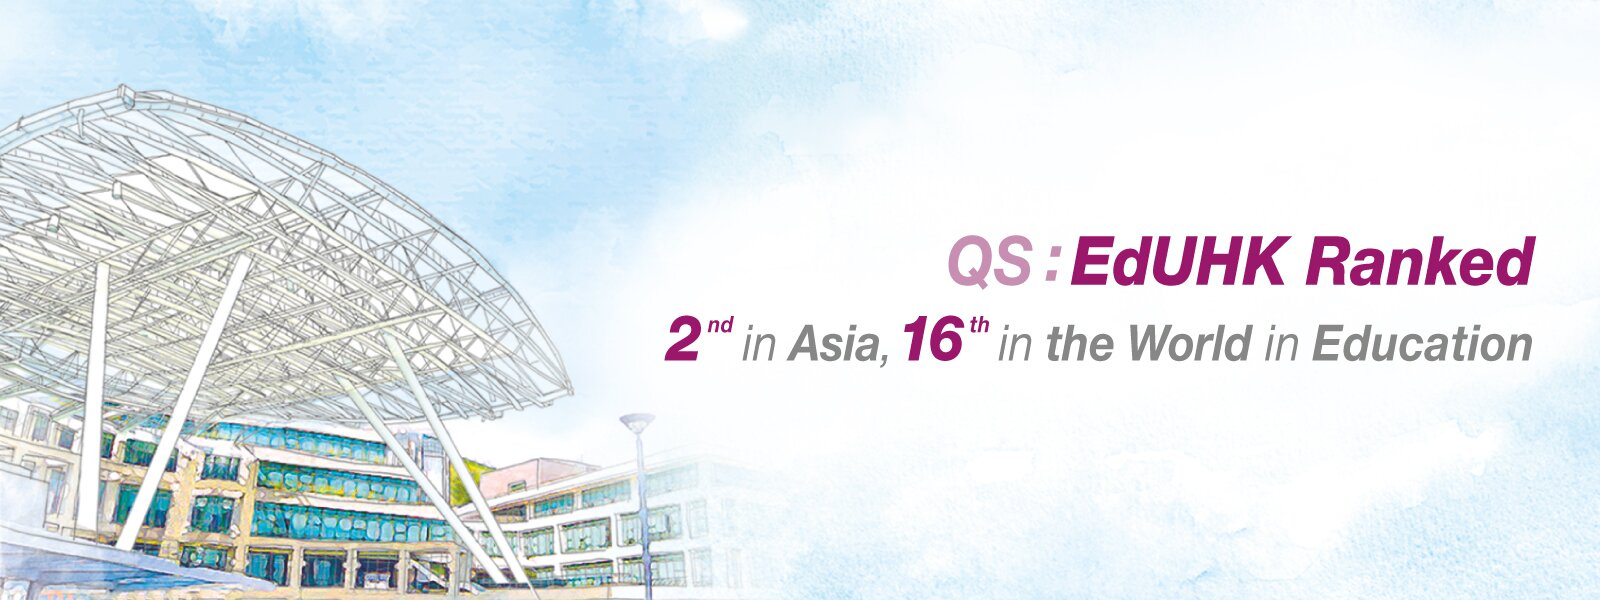 QS: EdUHK Ranked 2nd in Asia, 16th in the World in Education